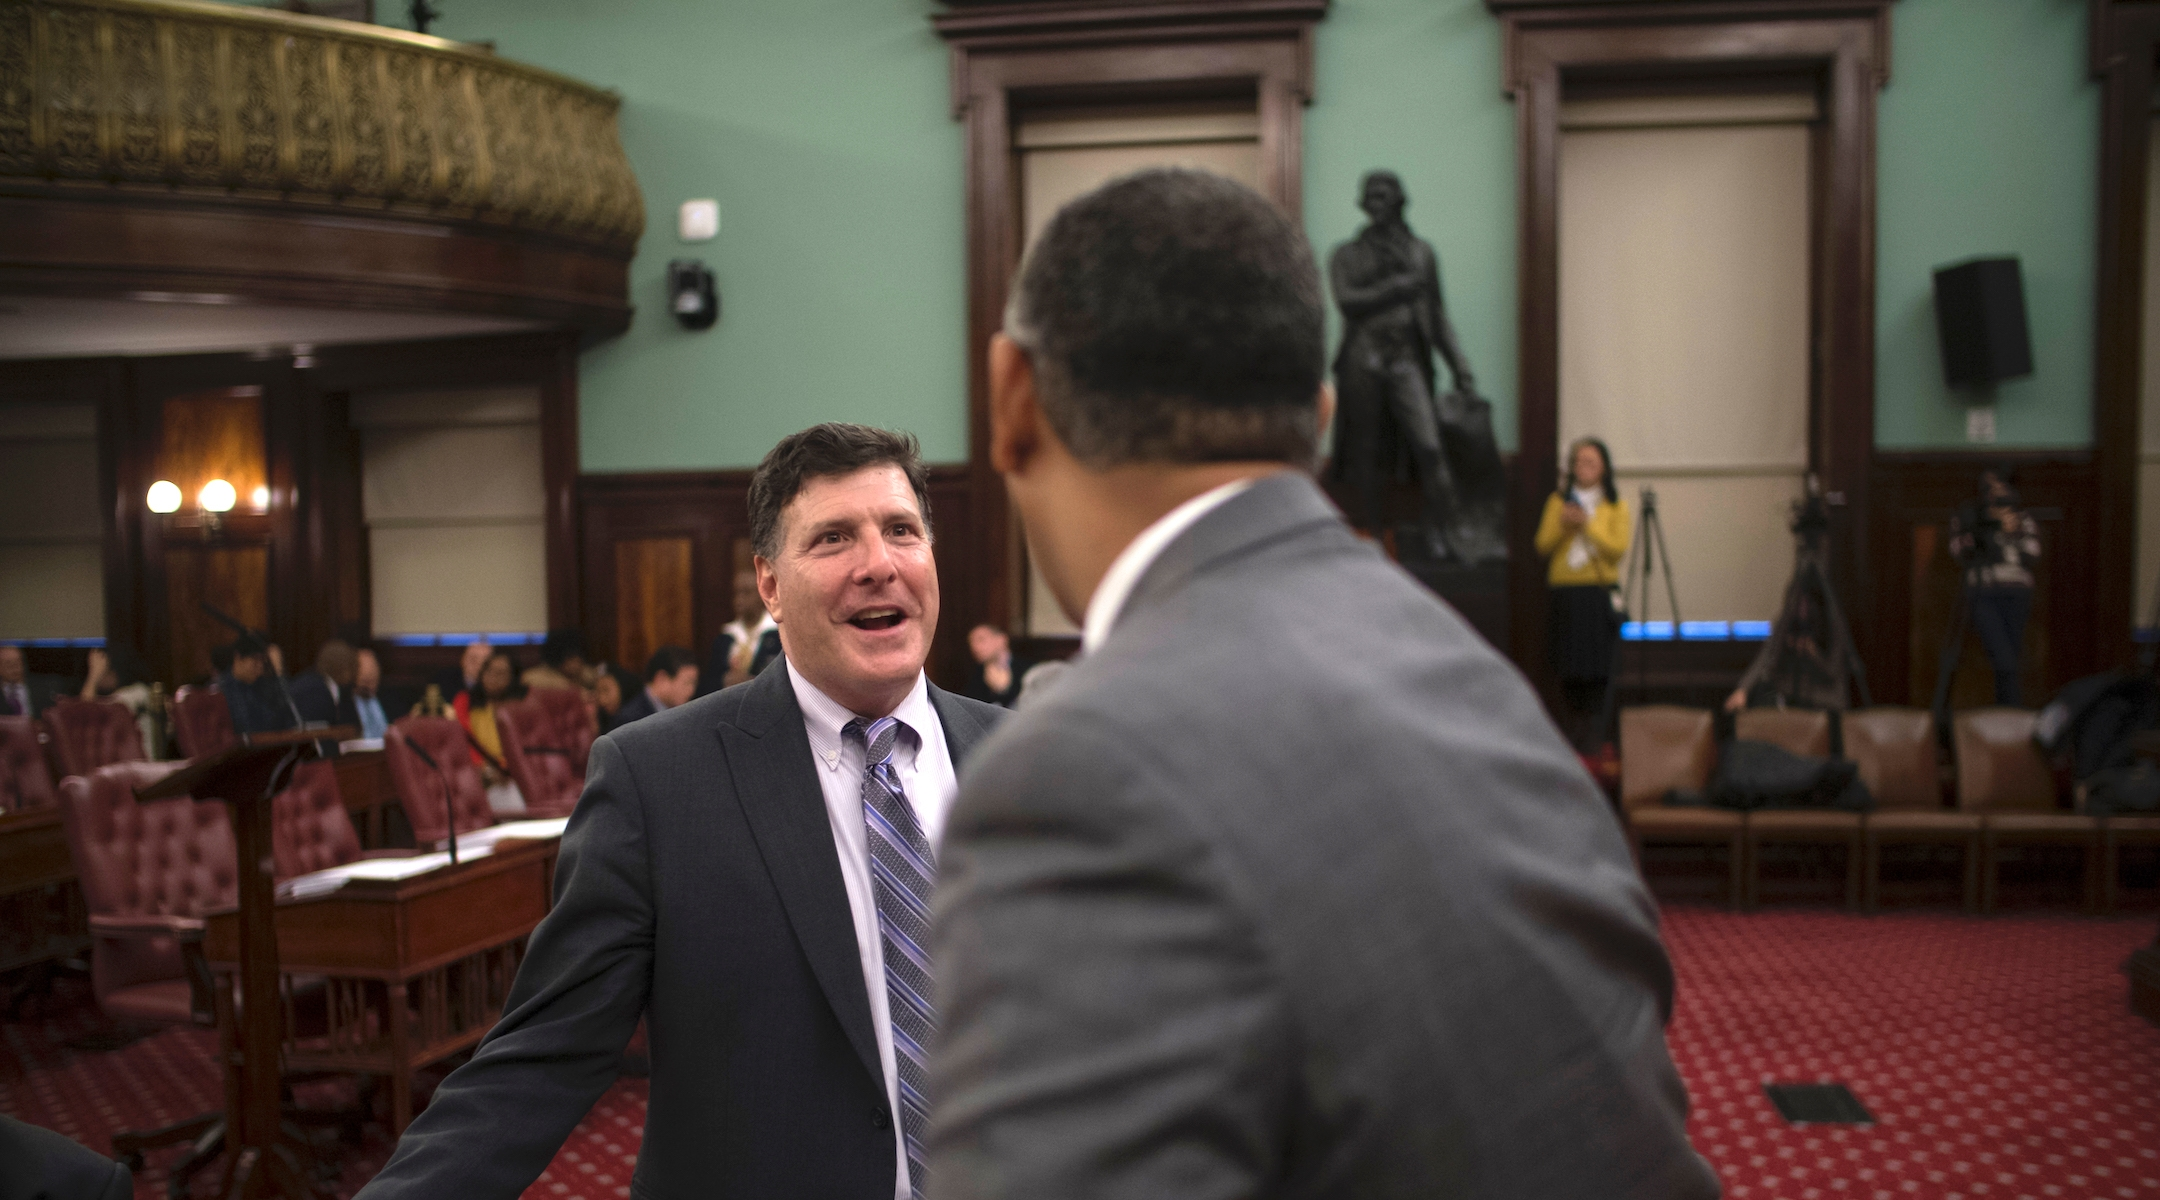 The Thomas Jefferson statue removed from New York City Council chambers was a gift from...